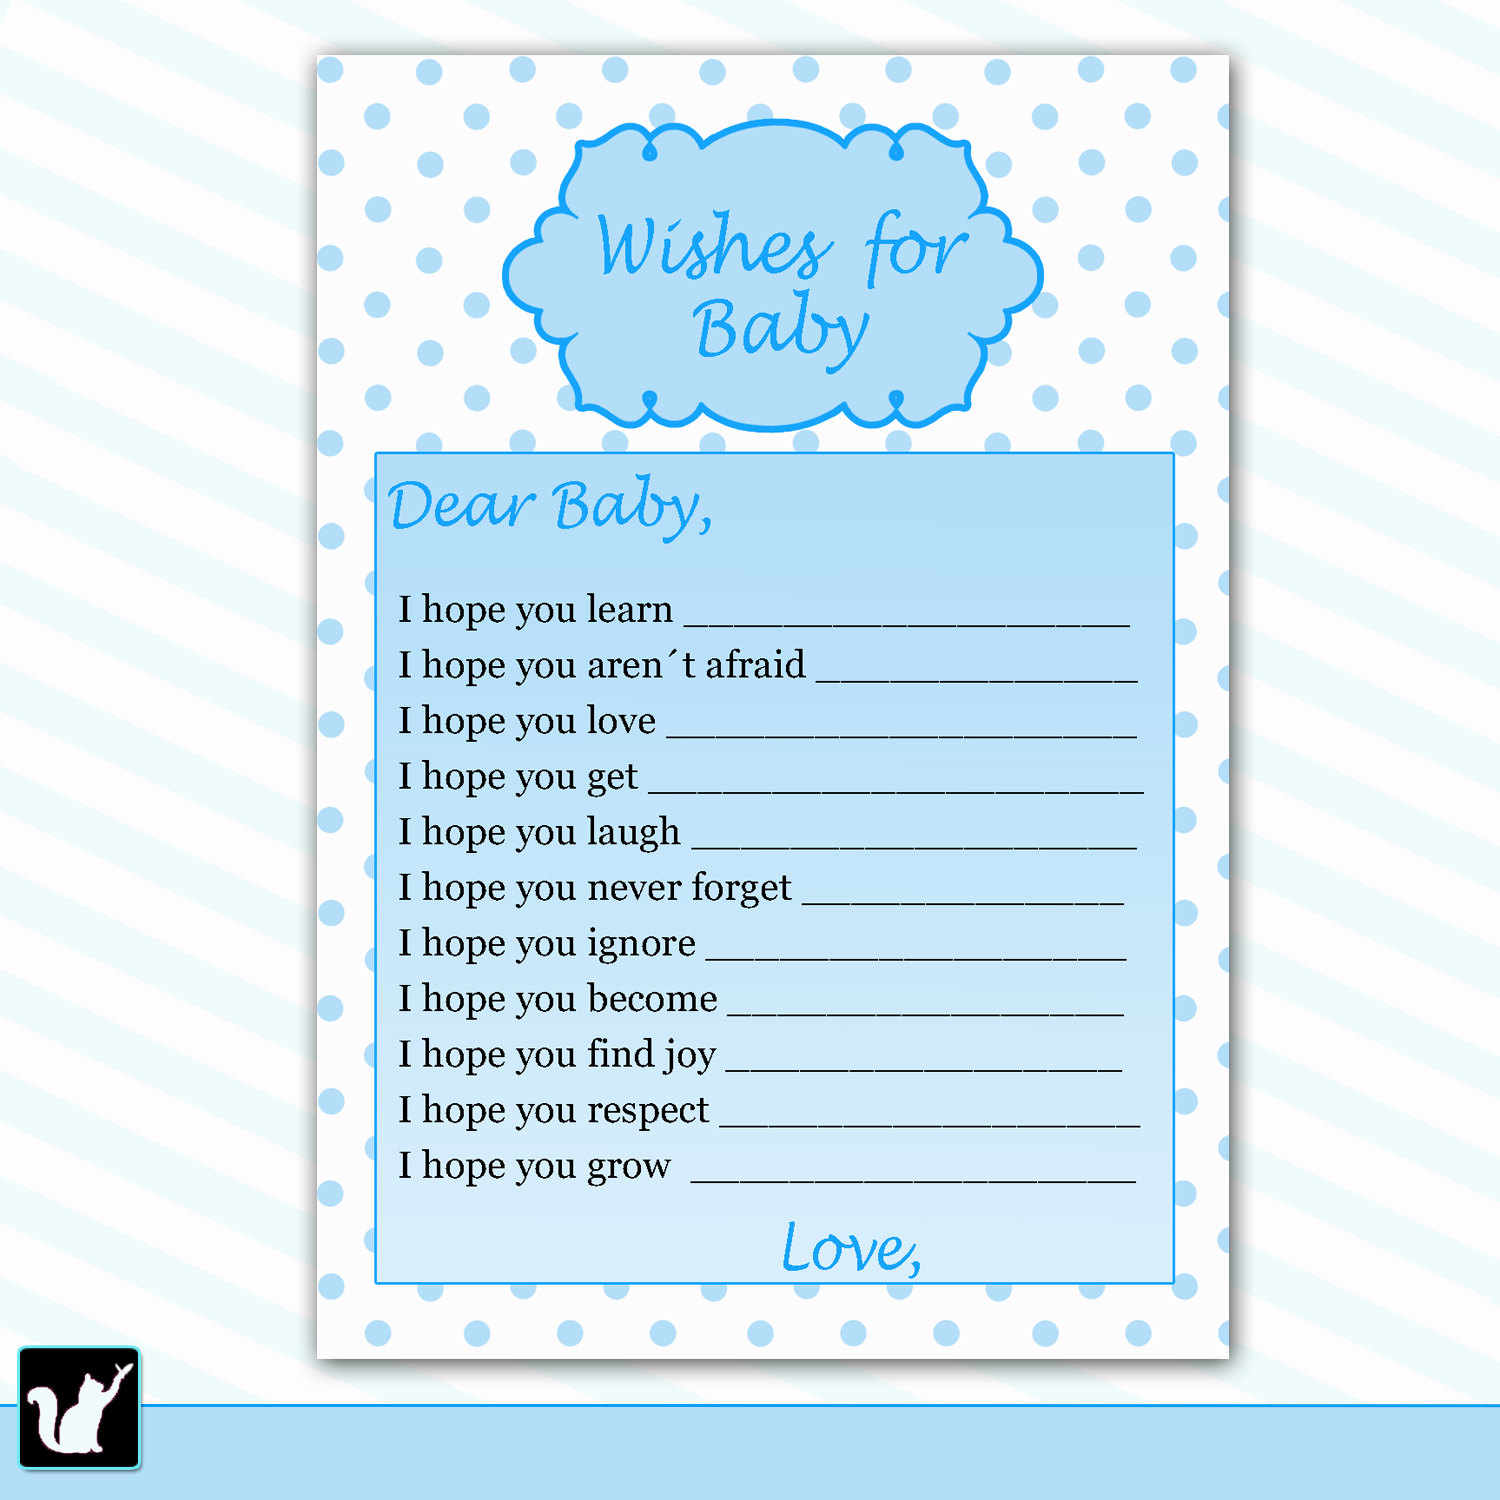 5 best images of free printable wishes for baby boy for Wishes for baby template printable